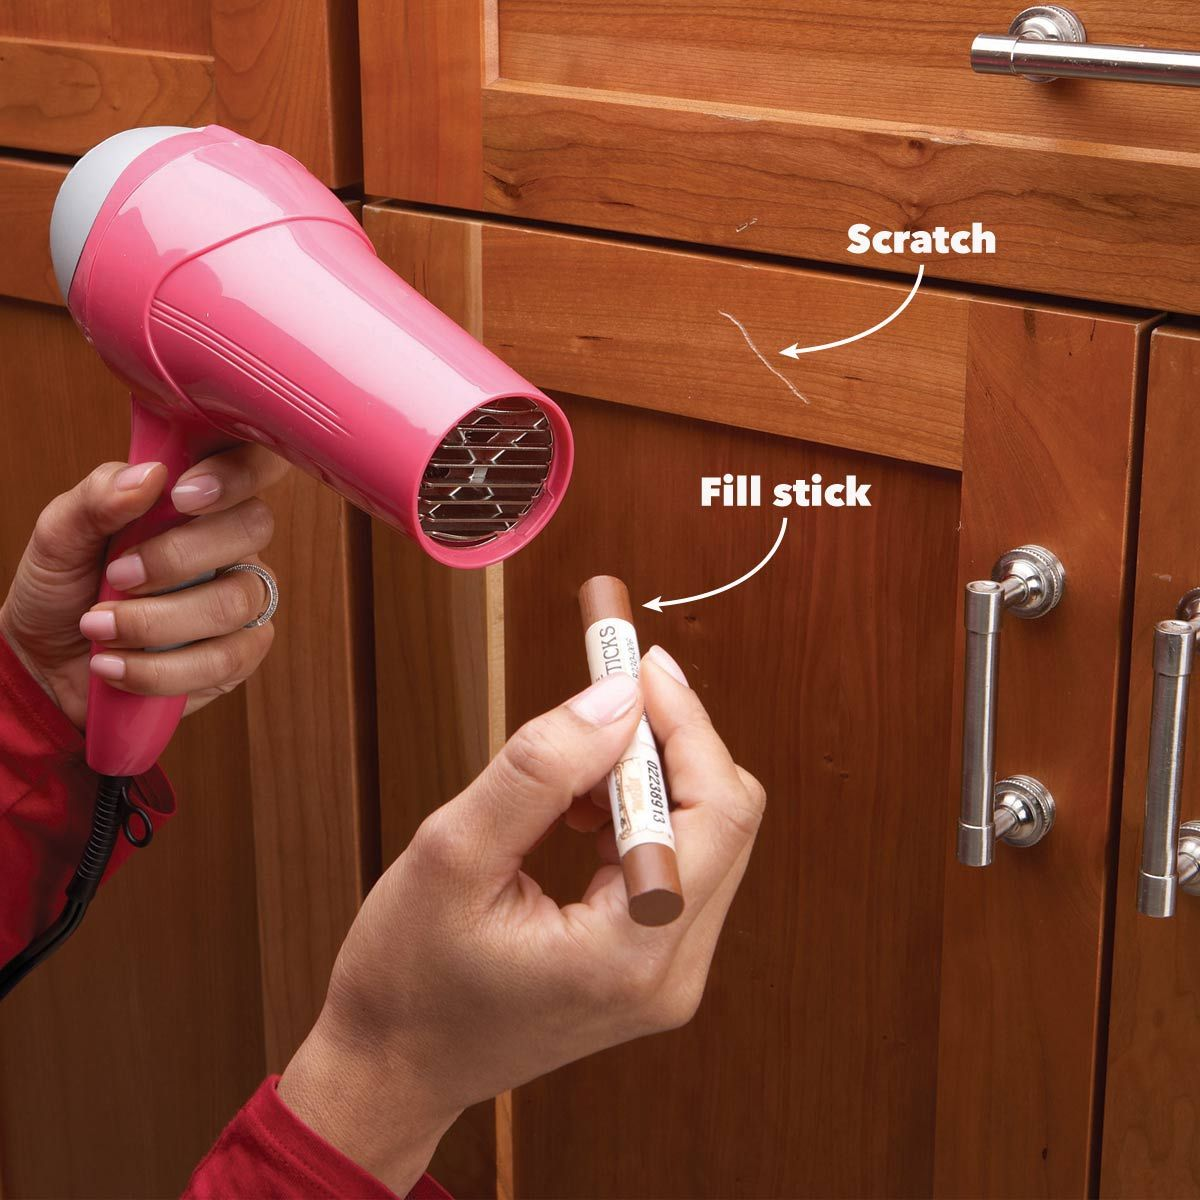 Home Repair How To Fix Kitchen Cabinets Home Repair Cleaning Cabinets Furniture Fix